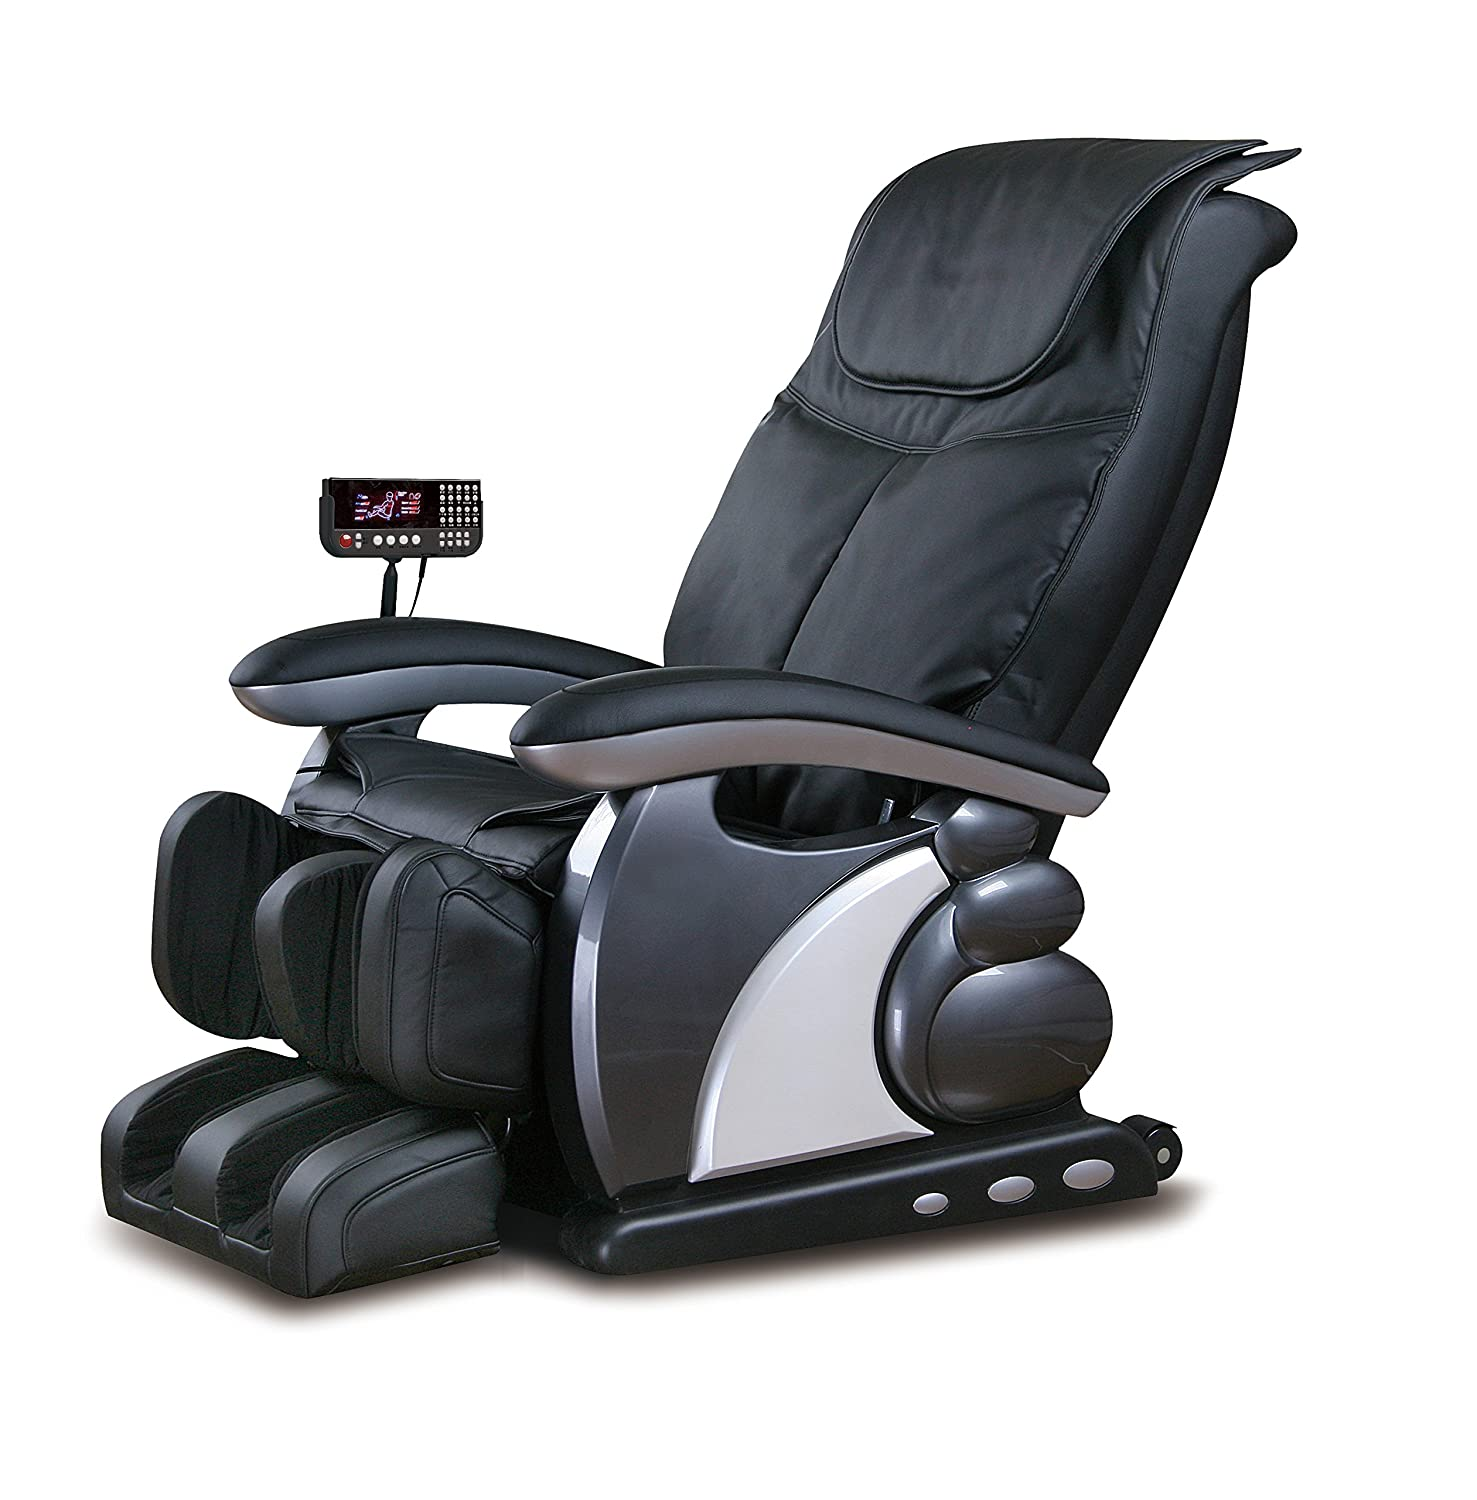 Medical Massage Recliner Massage Chair Amazon Kitchen & Home